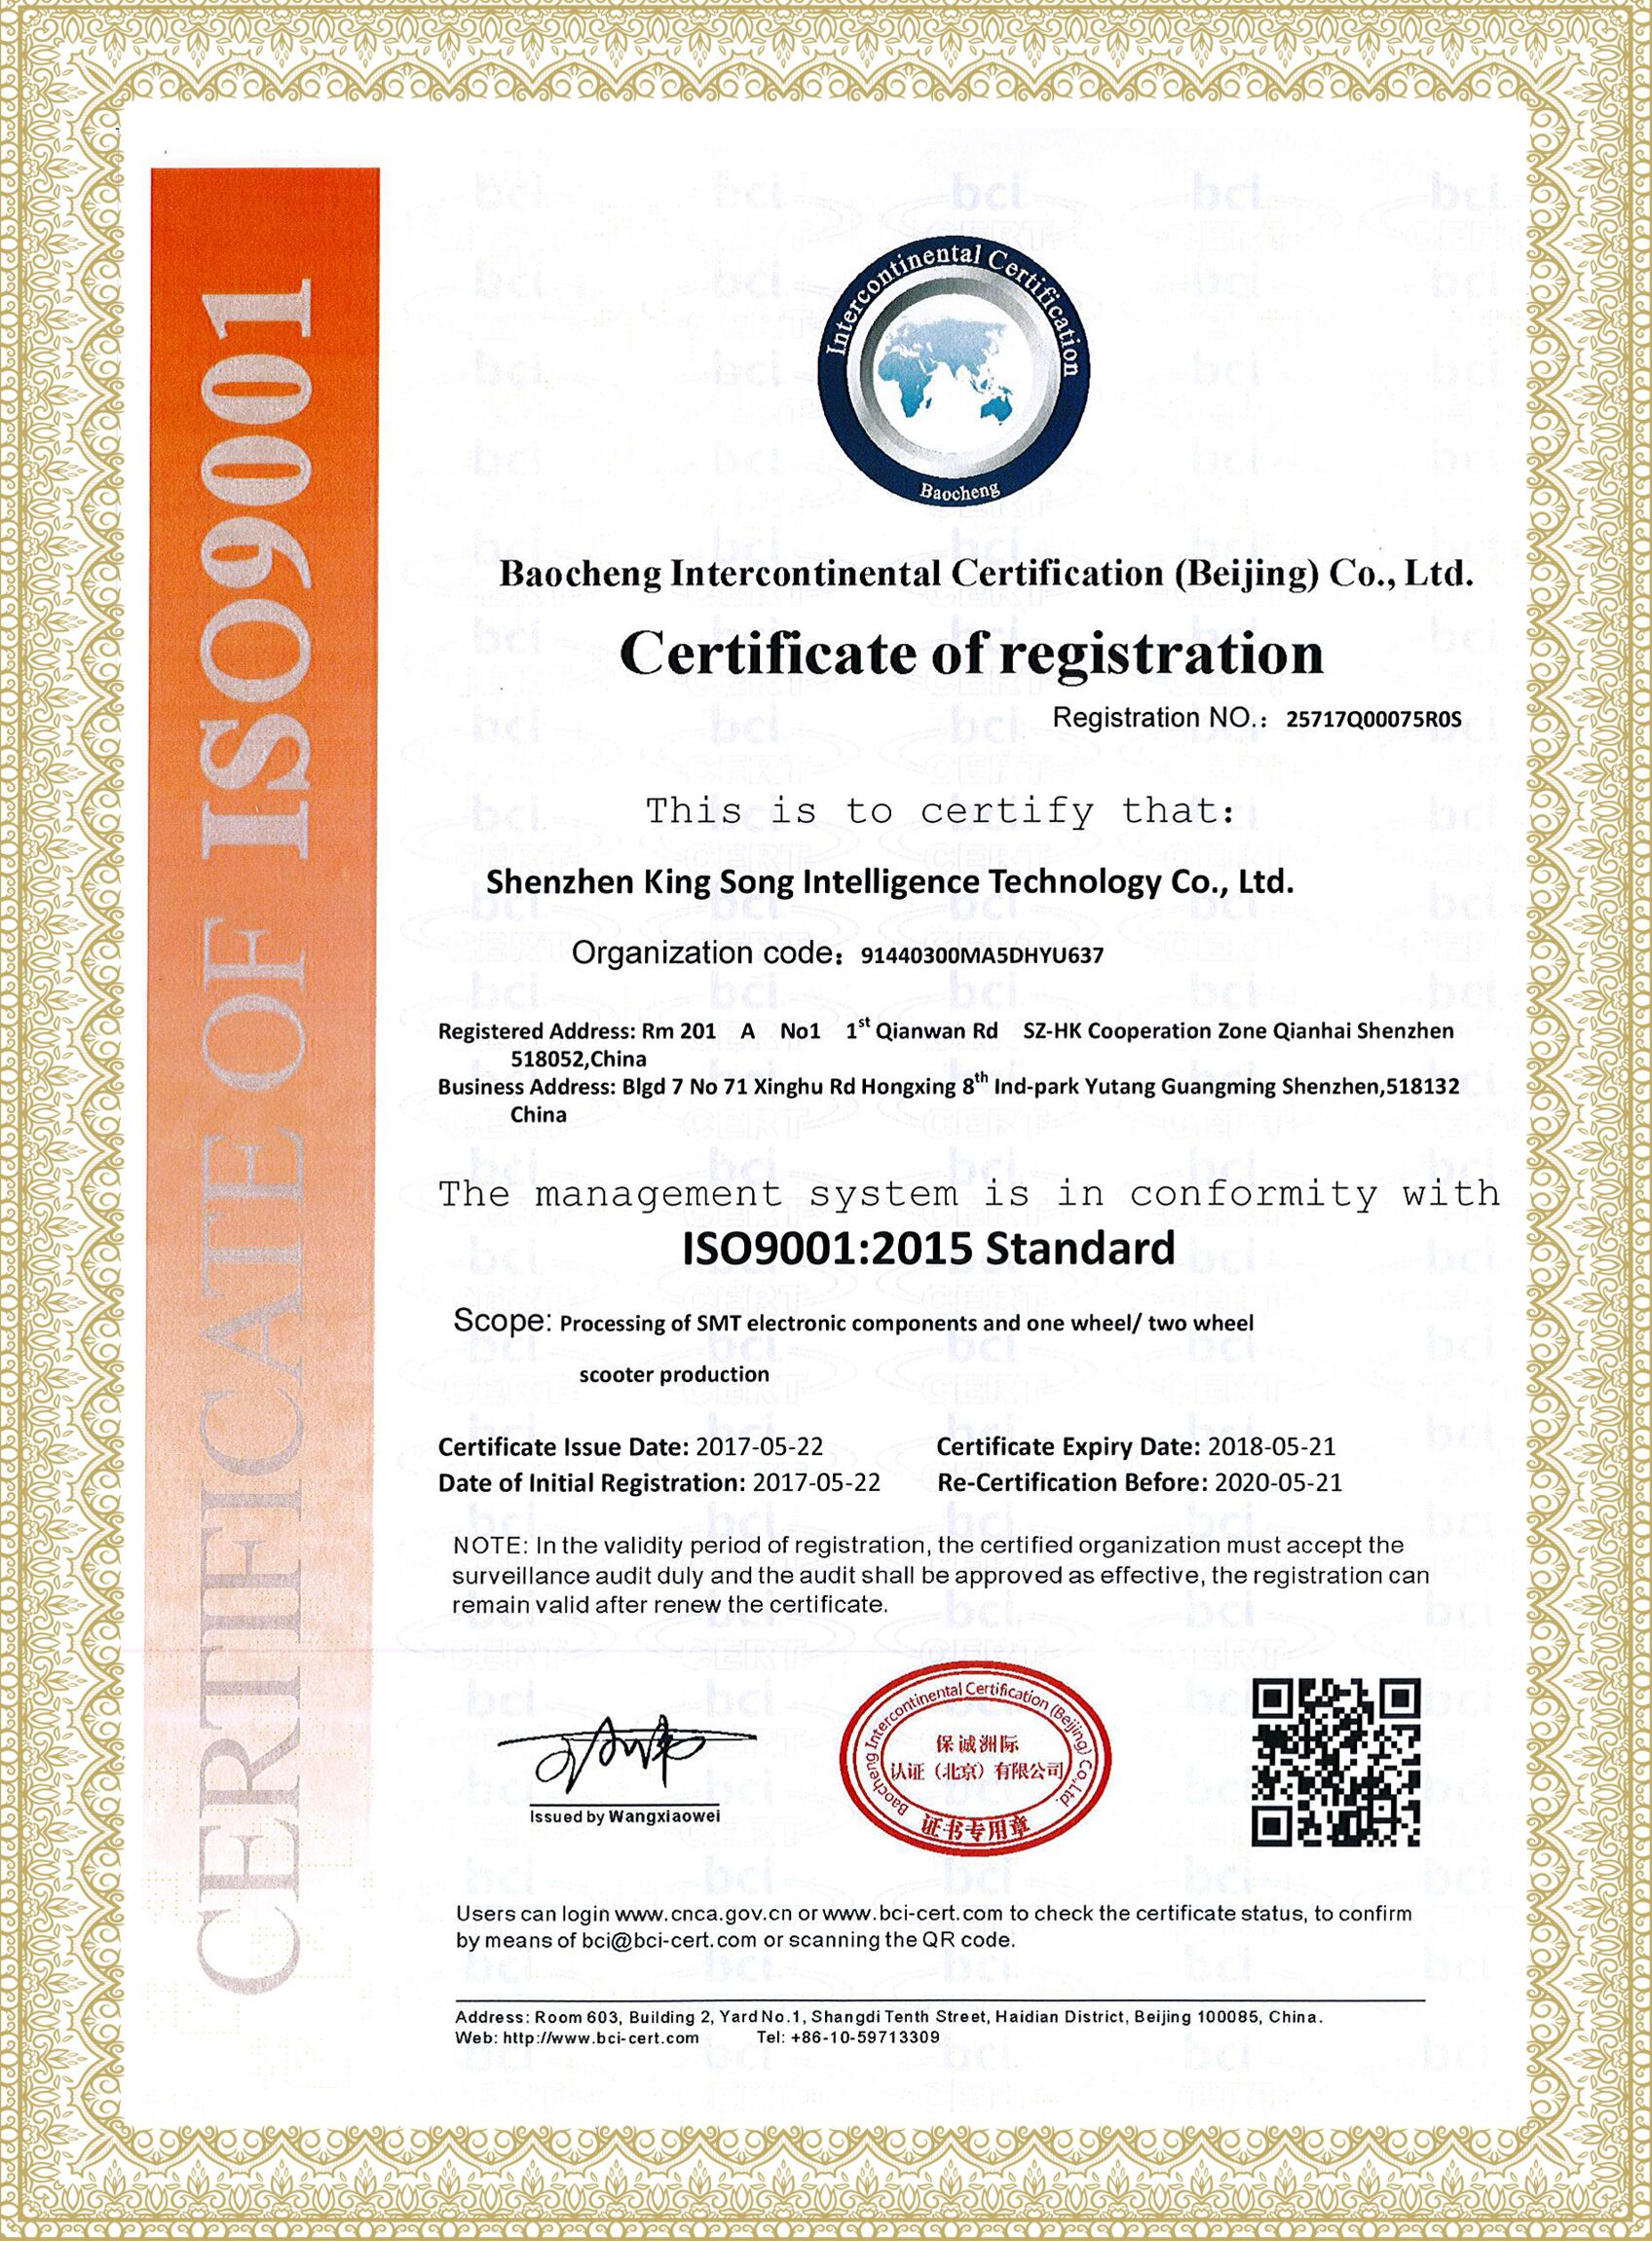 Certifications attained by shenzhen king song intelligence certifications attained by shenzhen king song intelligence technology coltd xflitez Choice Image